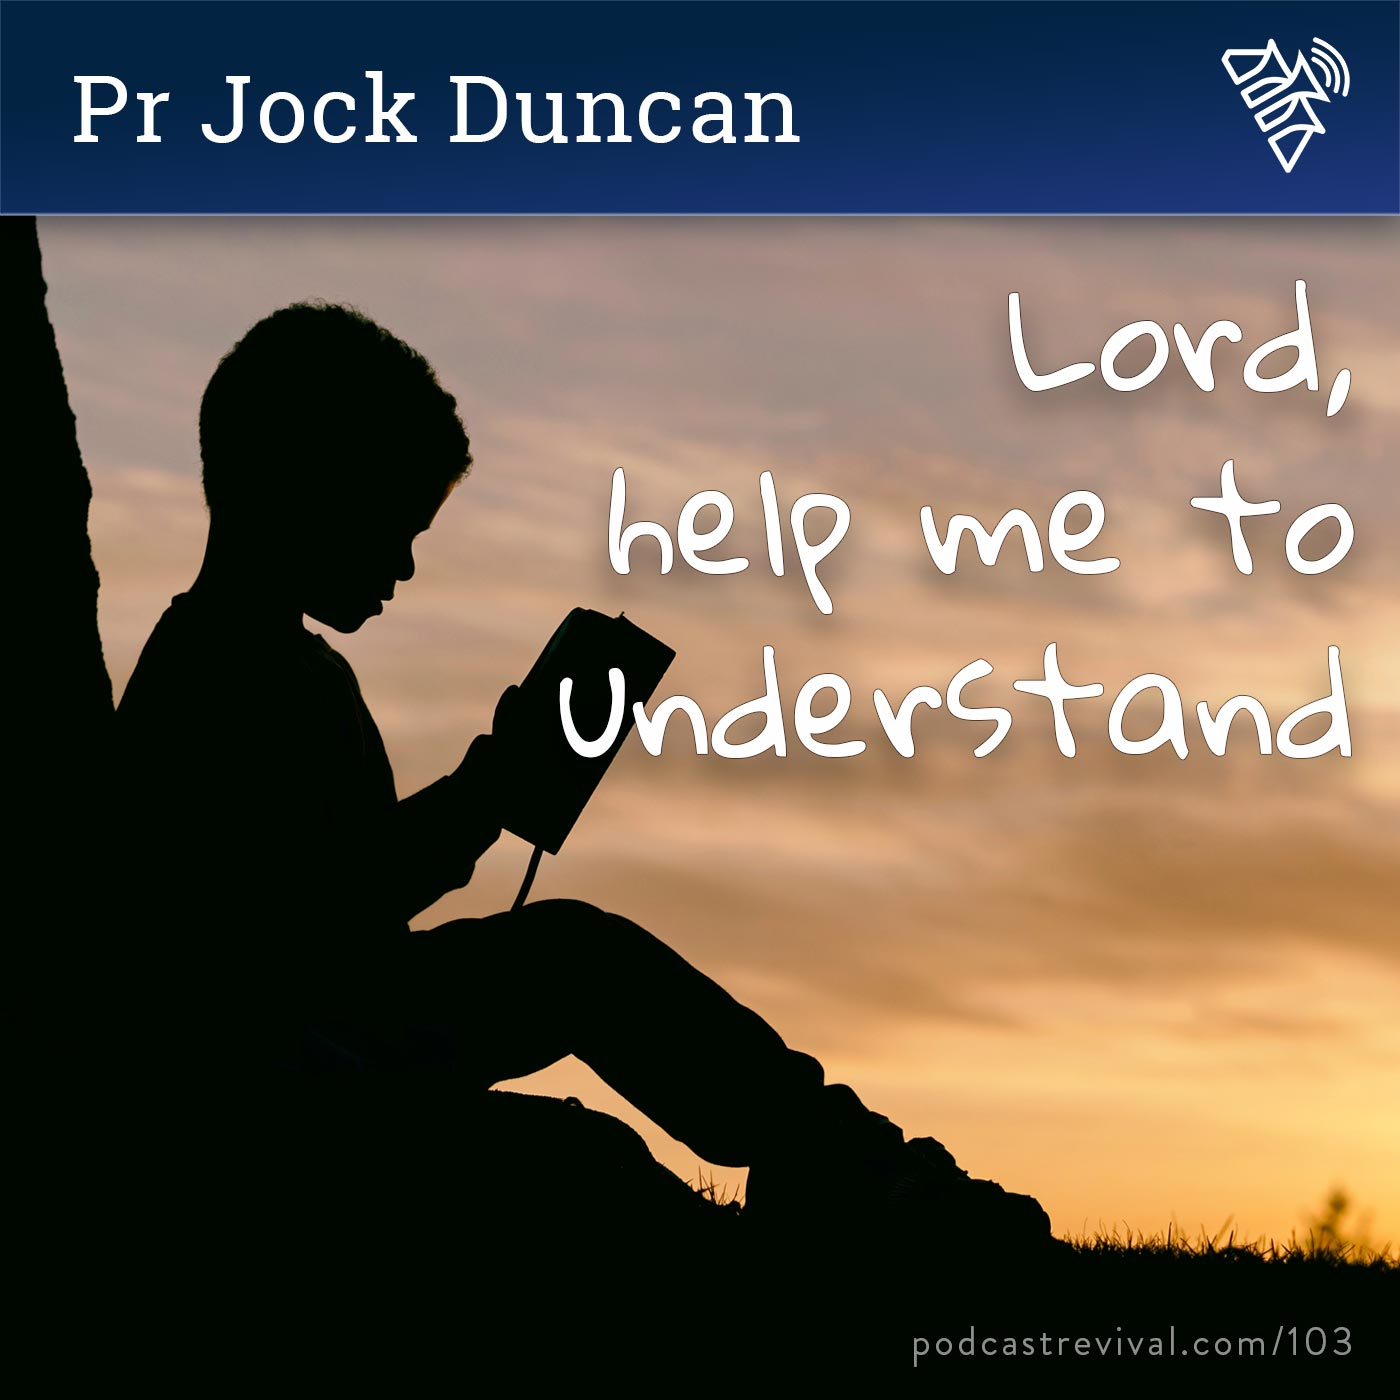 Lord, help me to understand